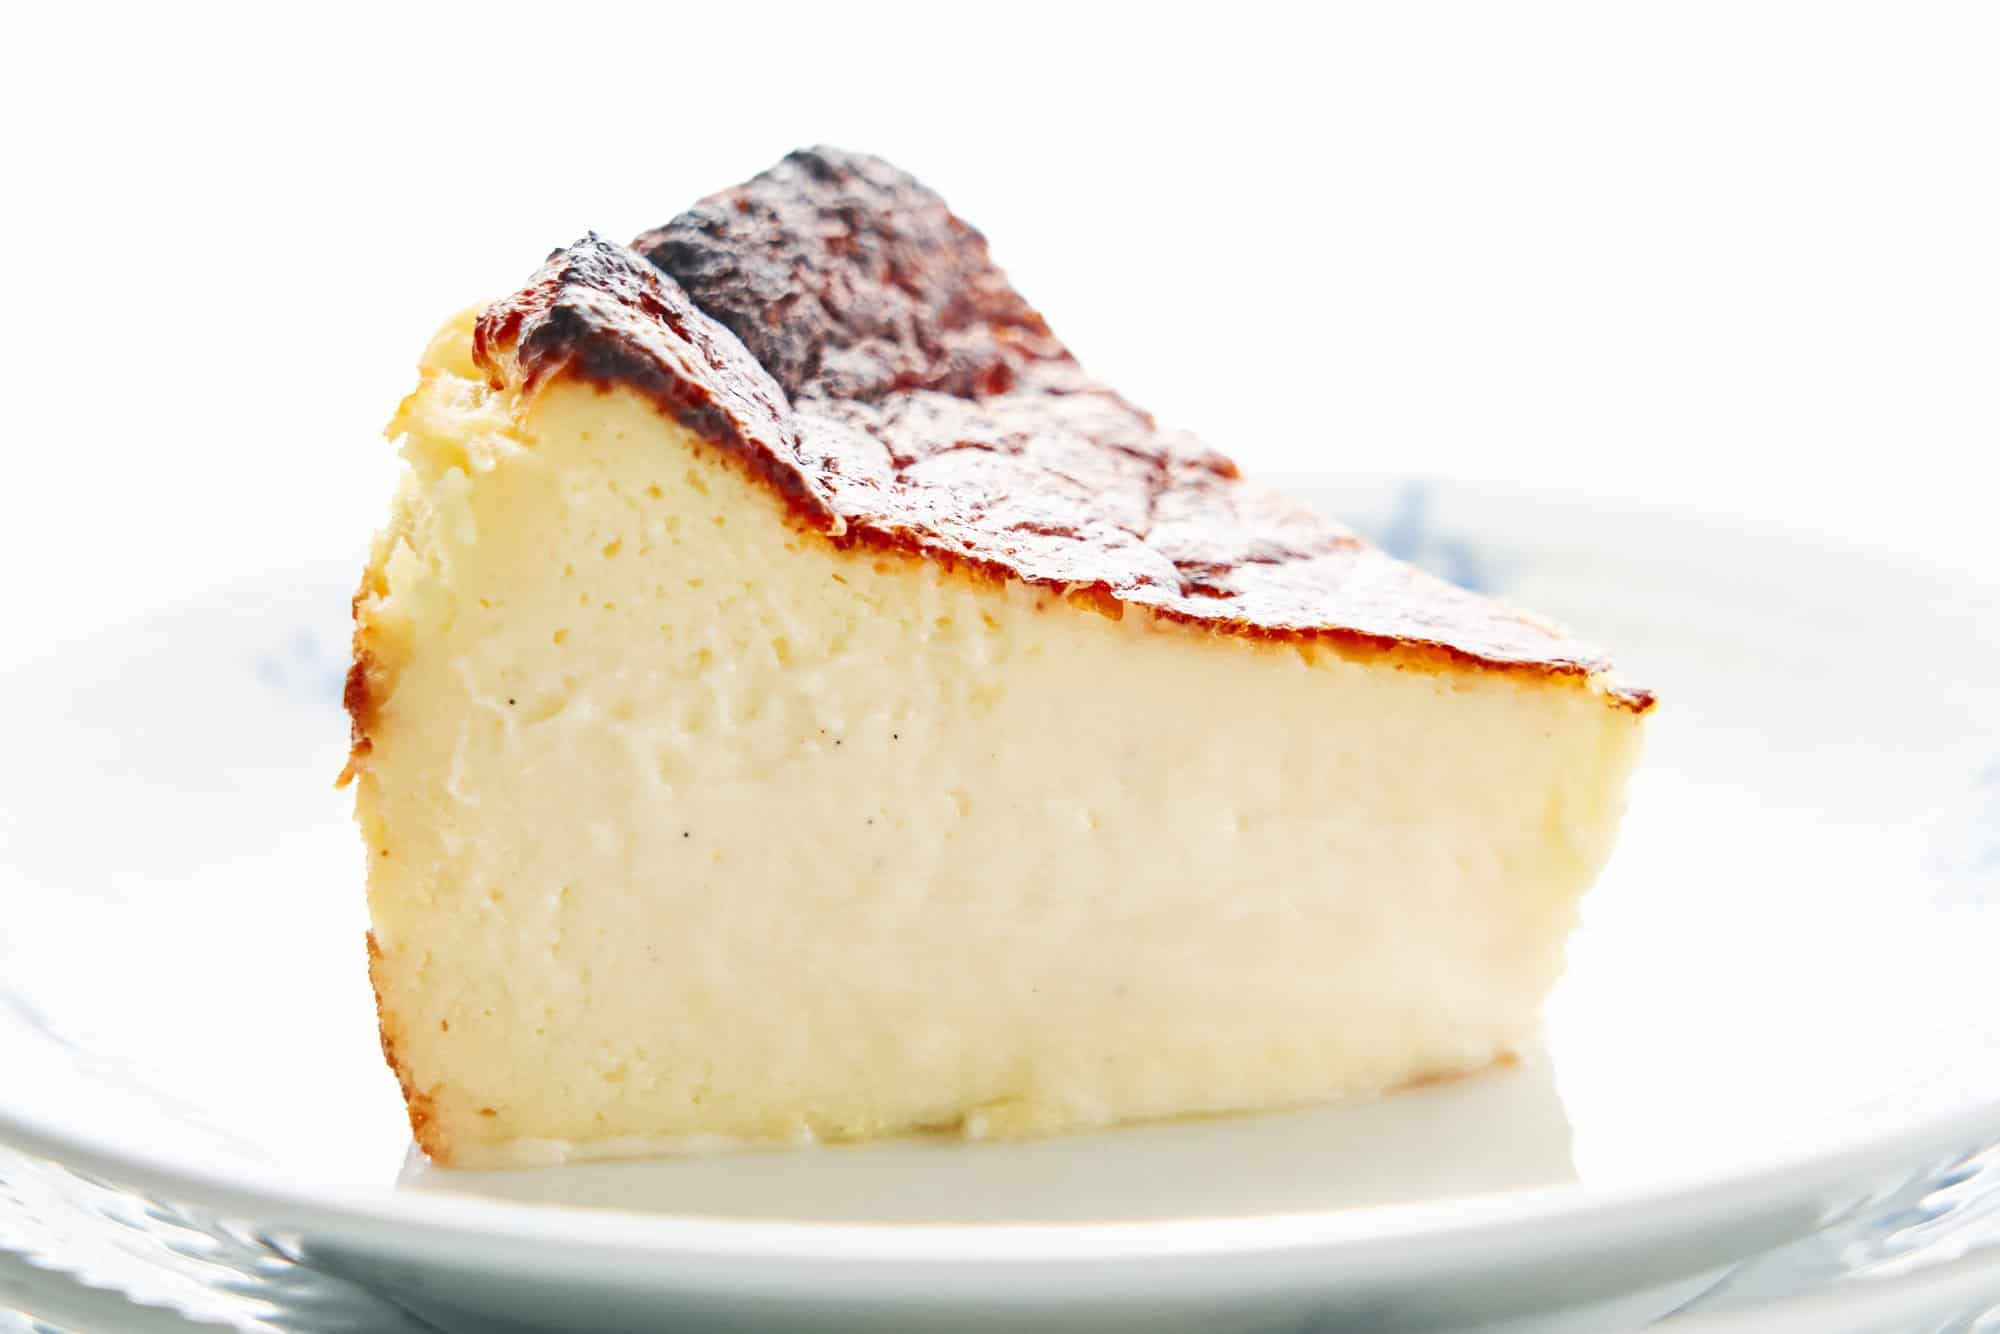 By baking the Basque Cheesecake in a scorching hot oven, the top gets a little burnt while the center remains silky smooth.